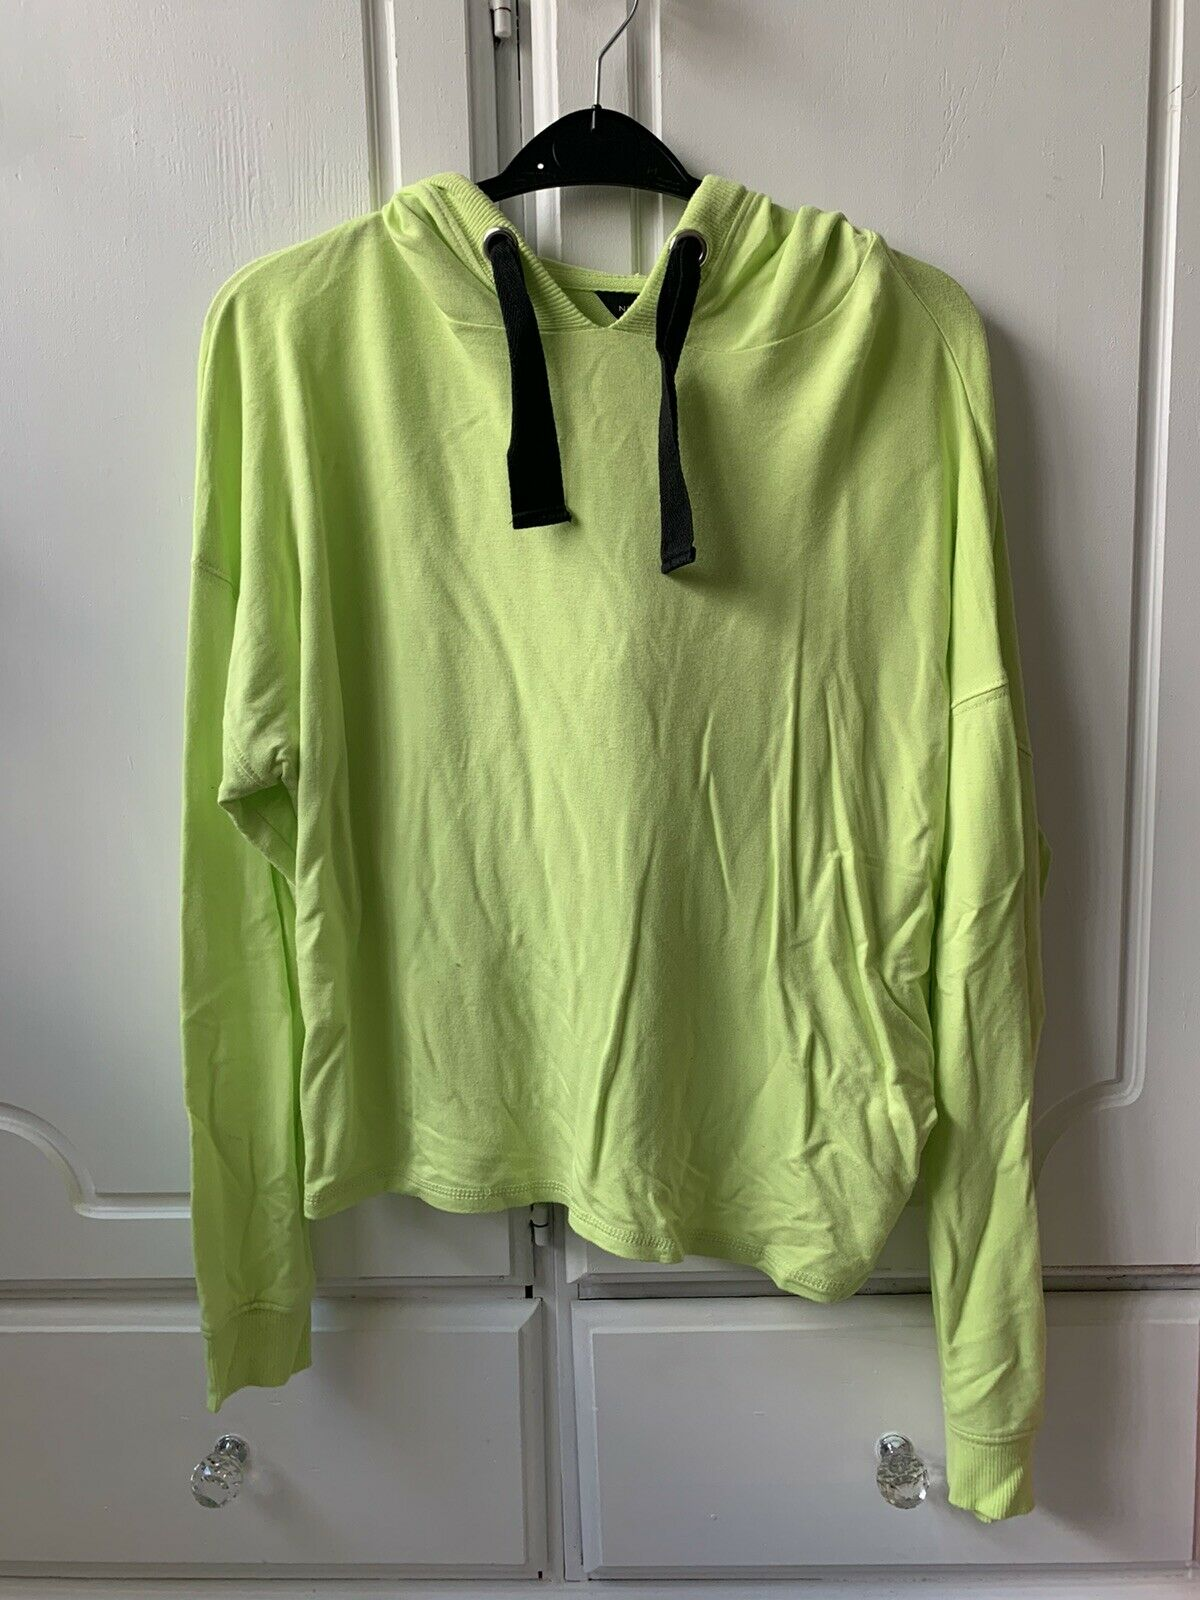 New Look Lime Green Light Weight Hoodie Size Small